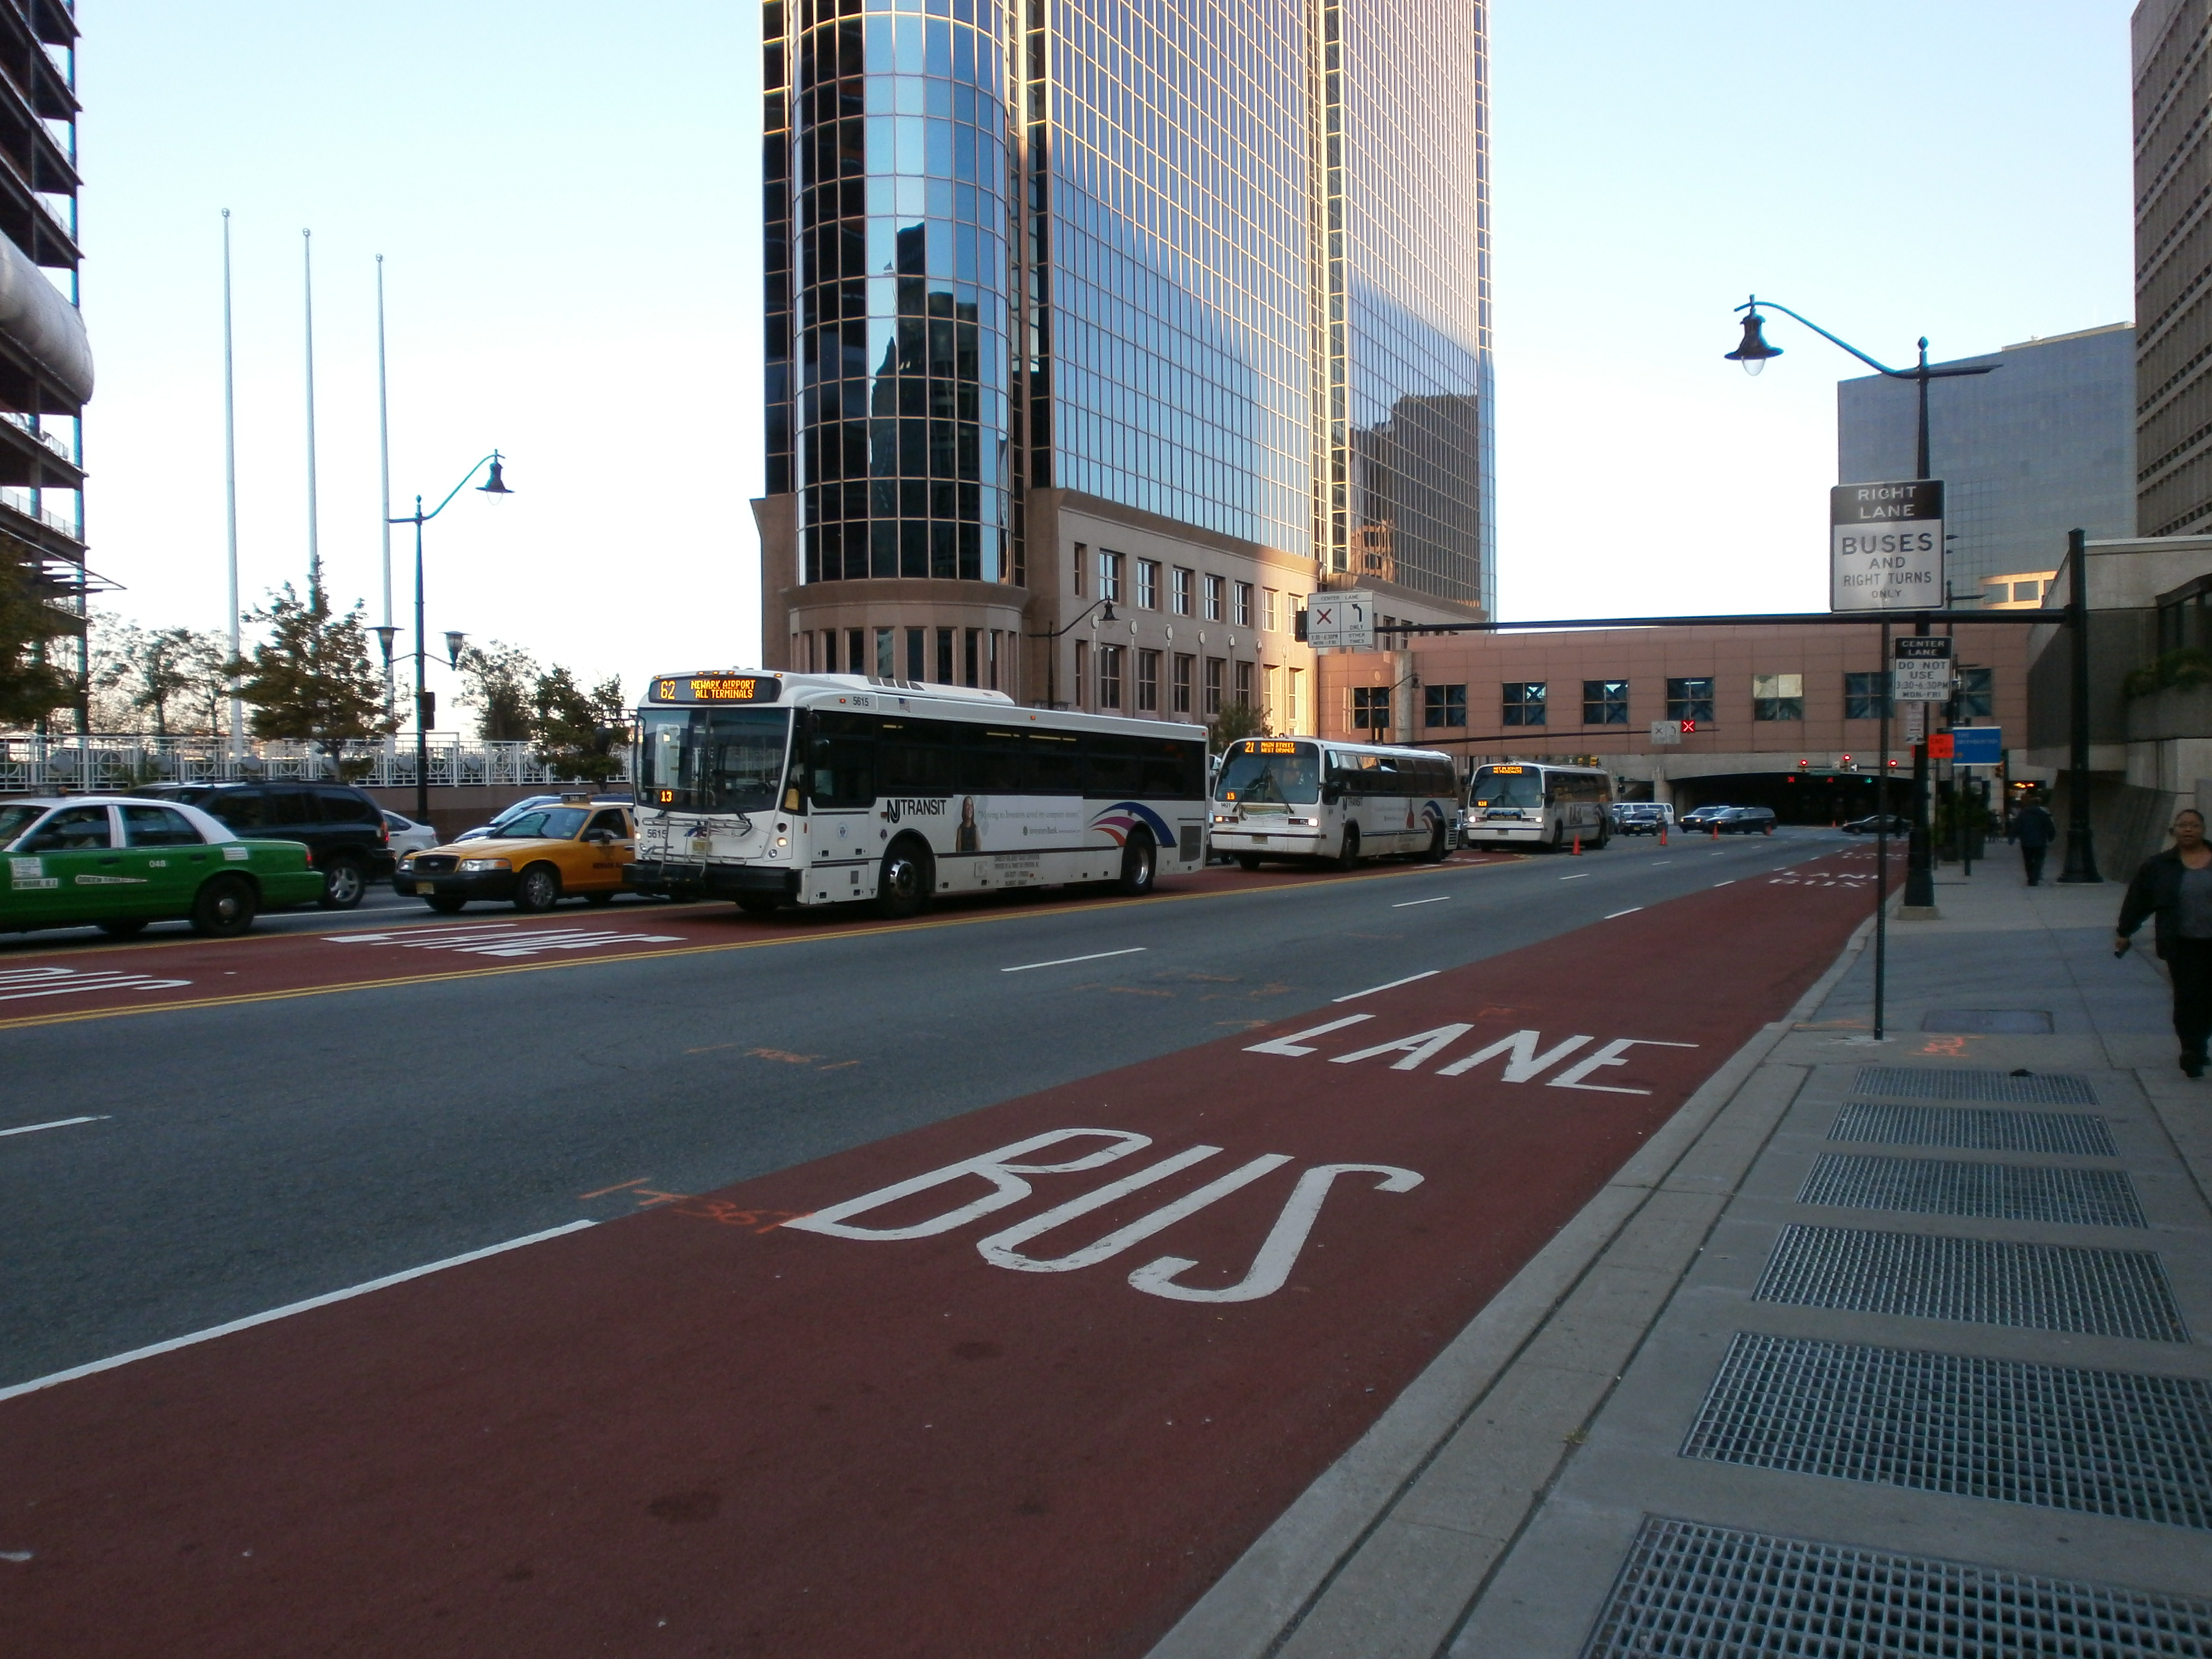 Image result for bus lanes